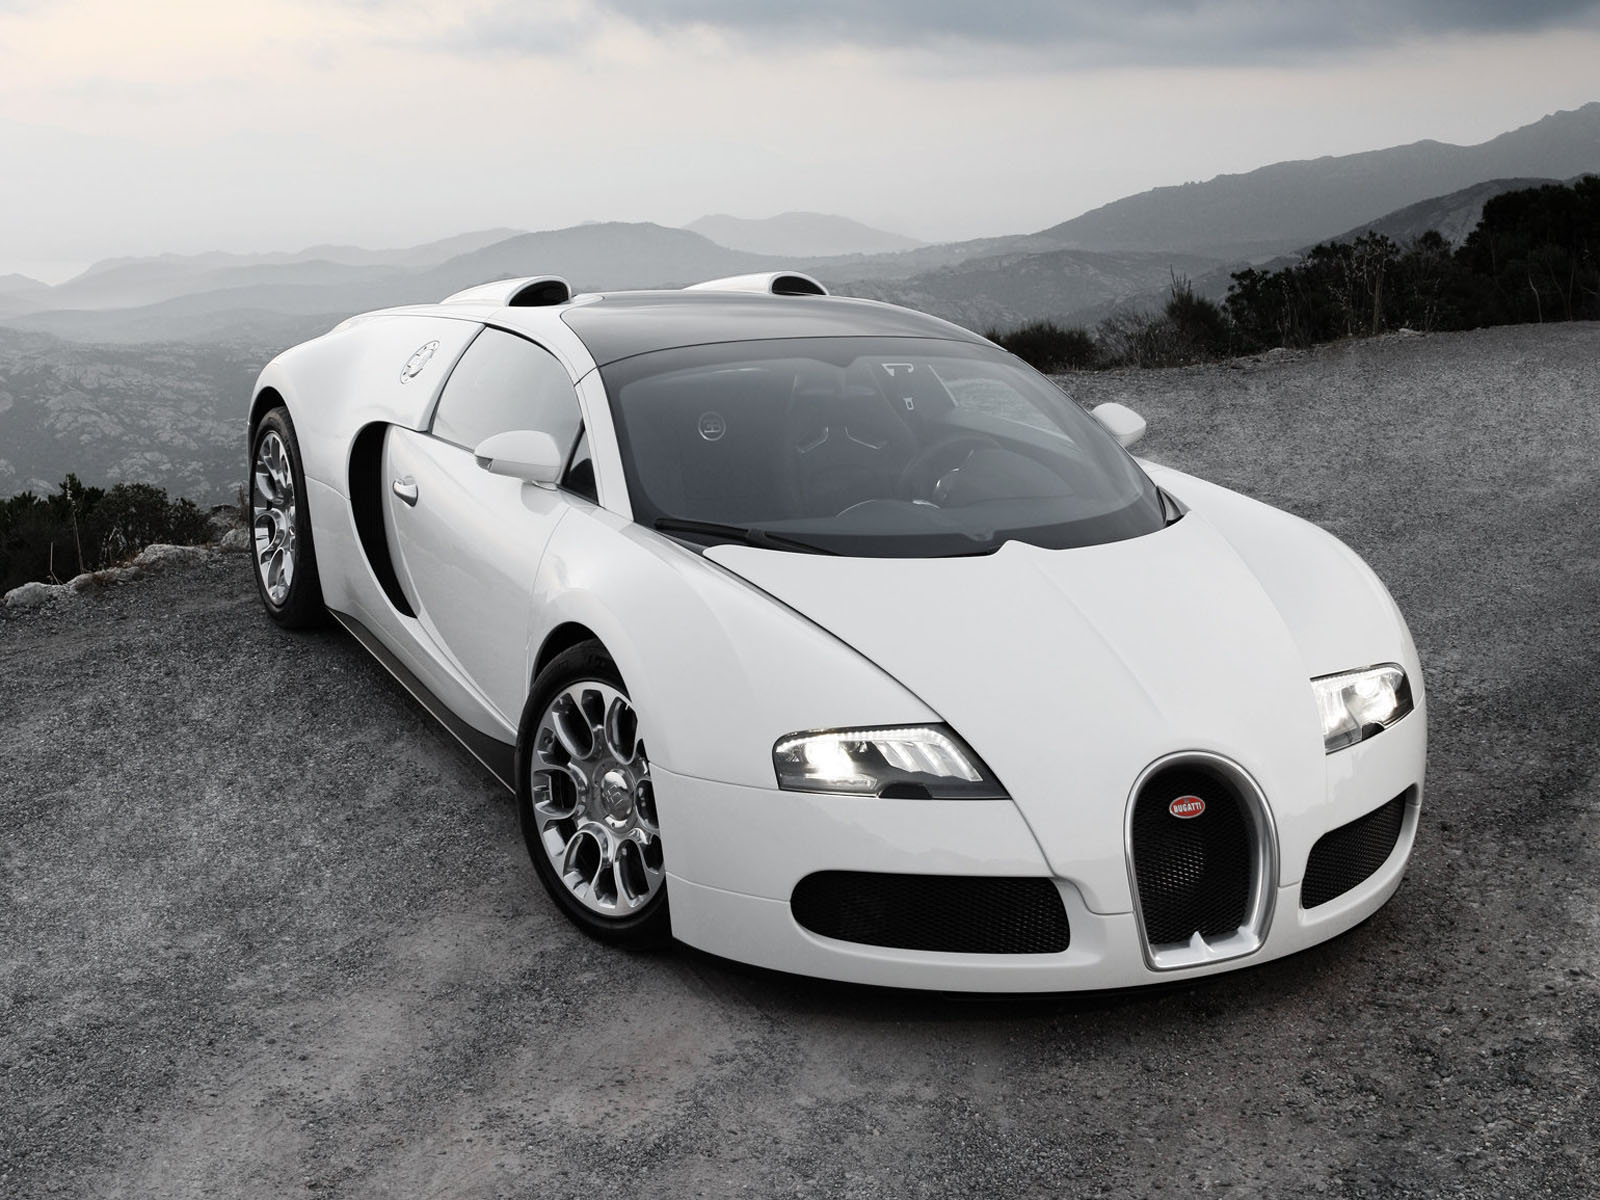 bugatti veyron wallpapers hd 559 wallpaper walldiskpaper. Black Bedroom Furniture Sets. Home Design Ideas